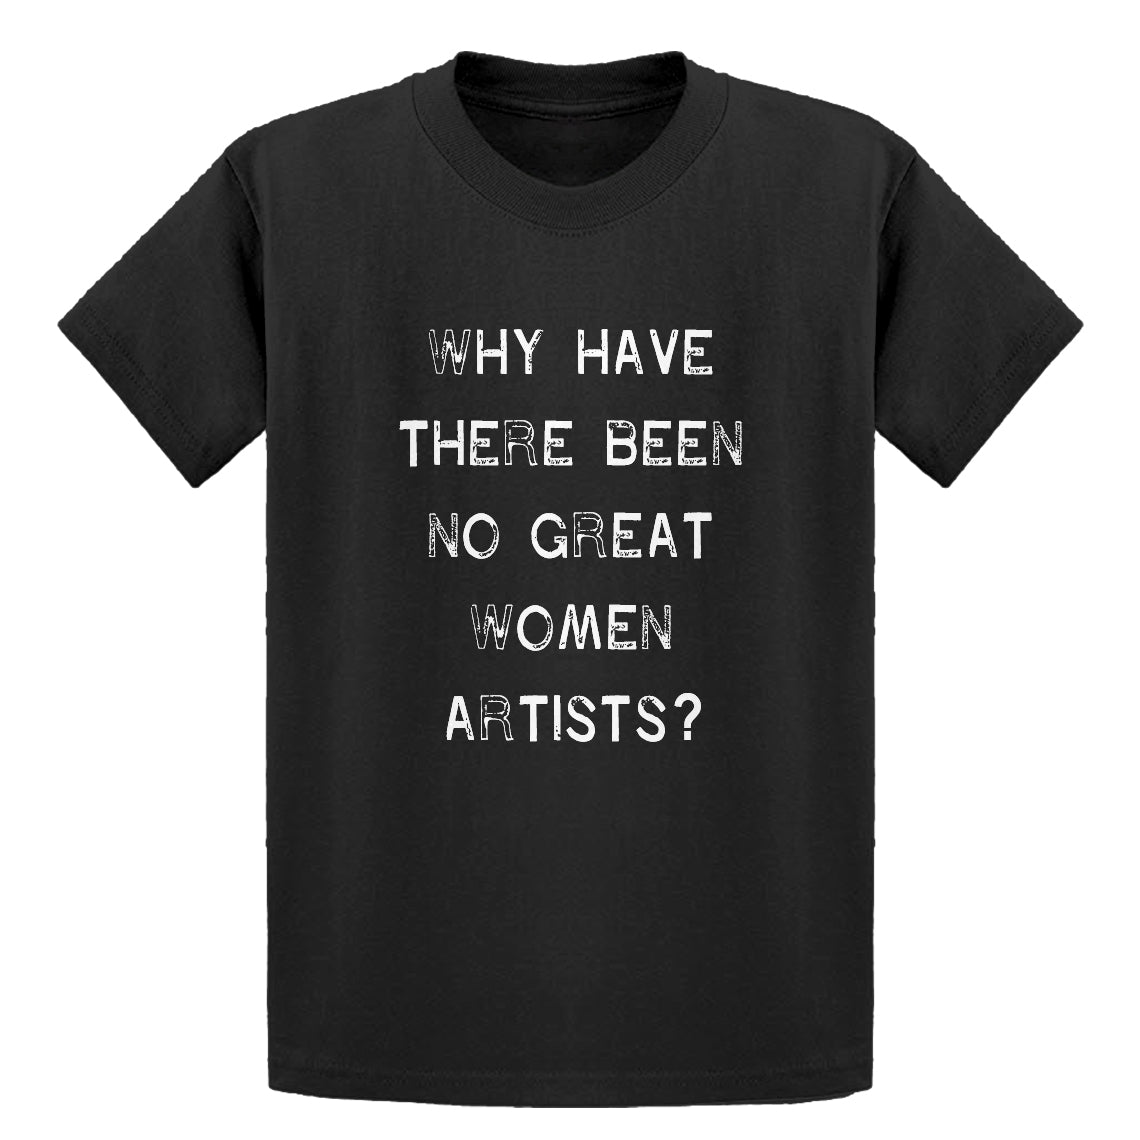 Youth No Great Women Artists Kids T-shirt